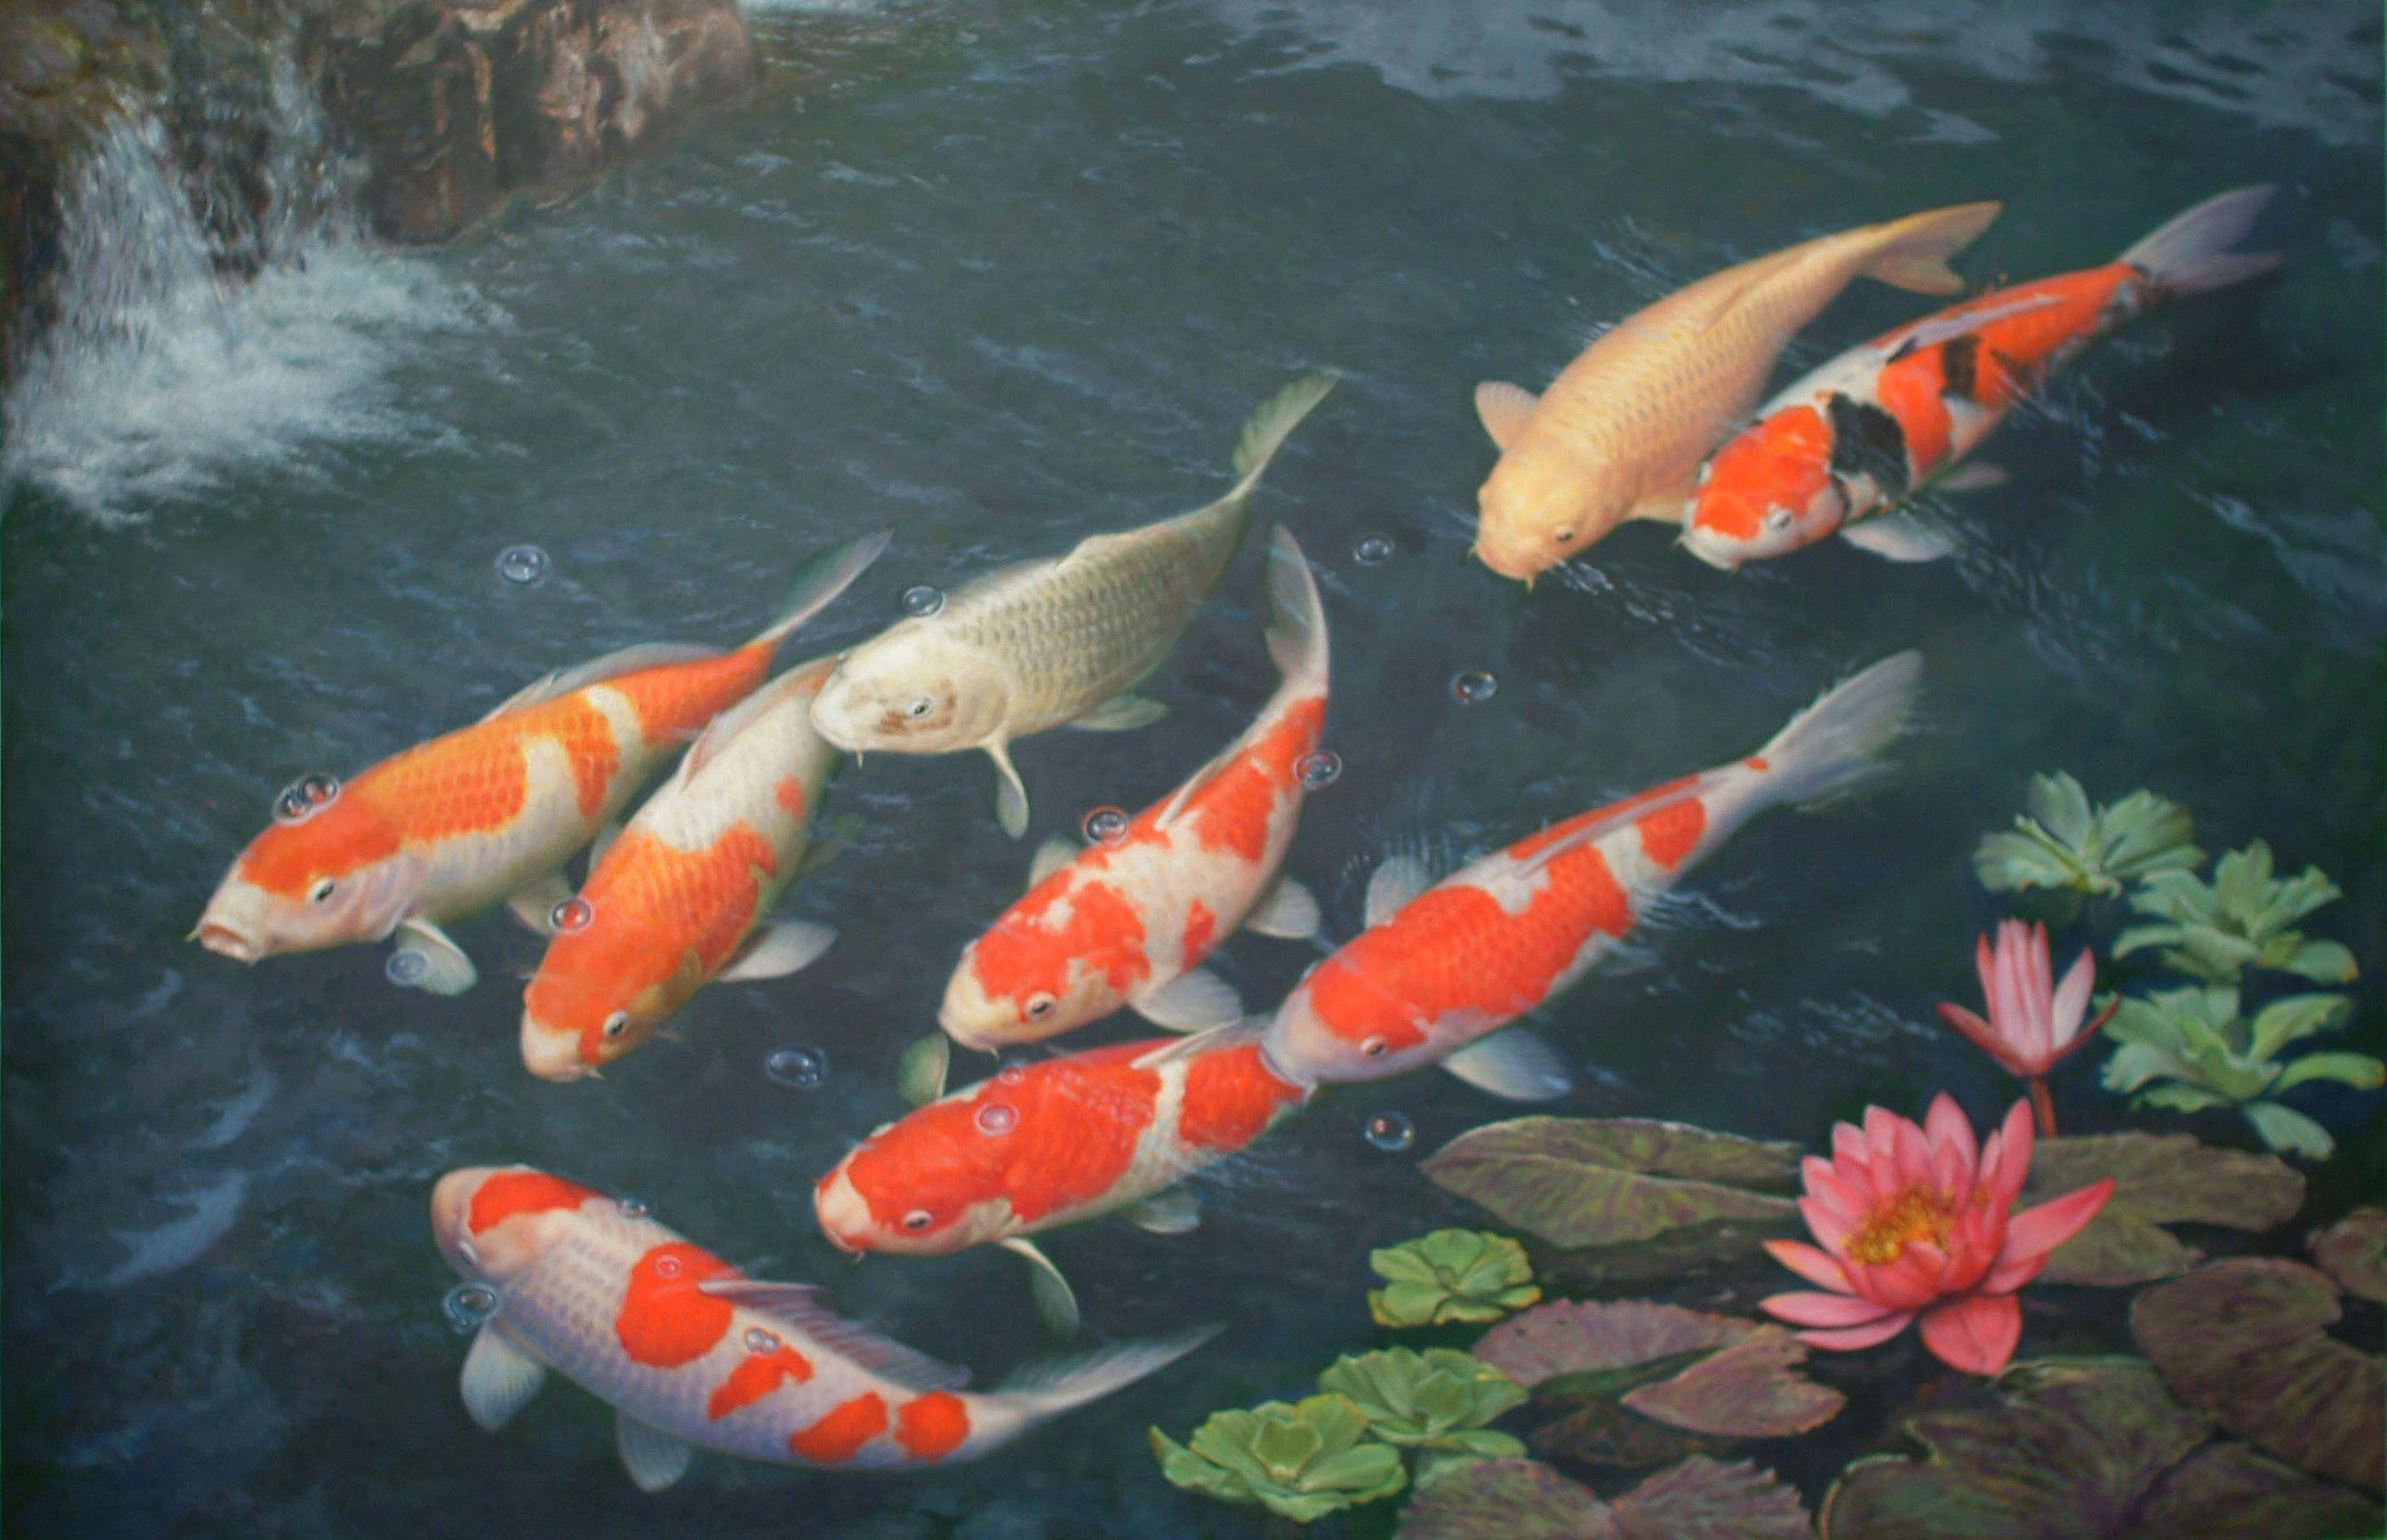 Koi fish wallpapers wallpaper cave for Japan koi fish pond